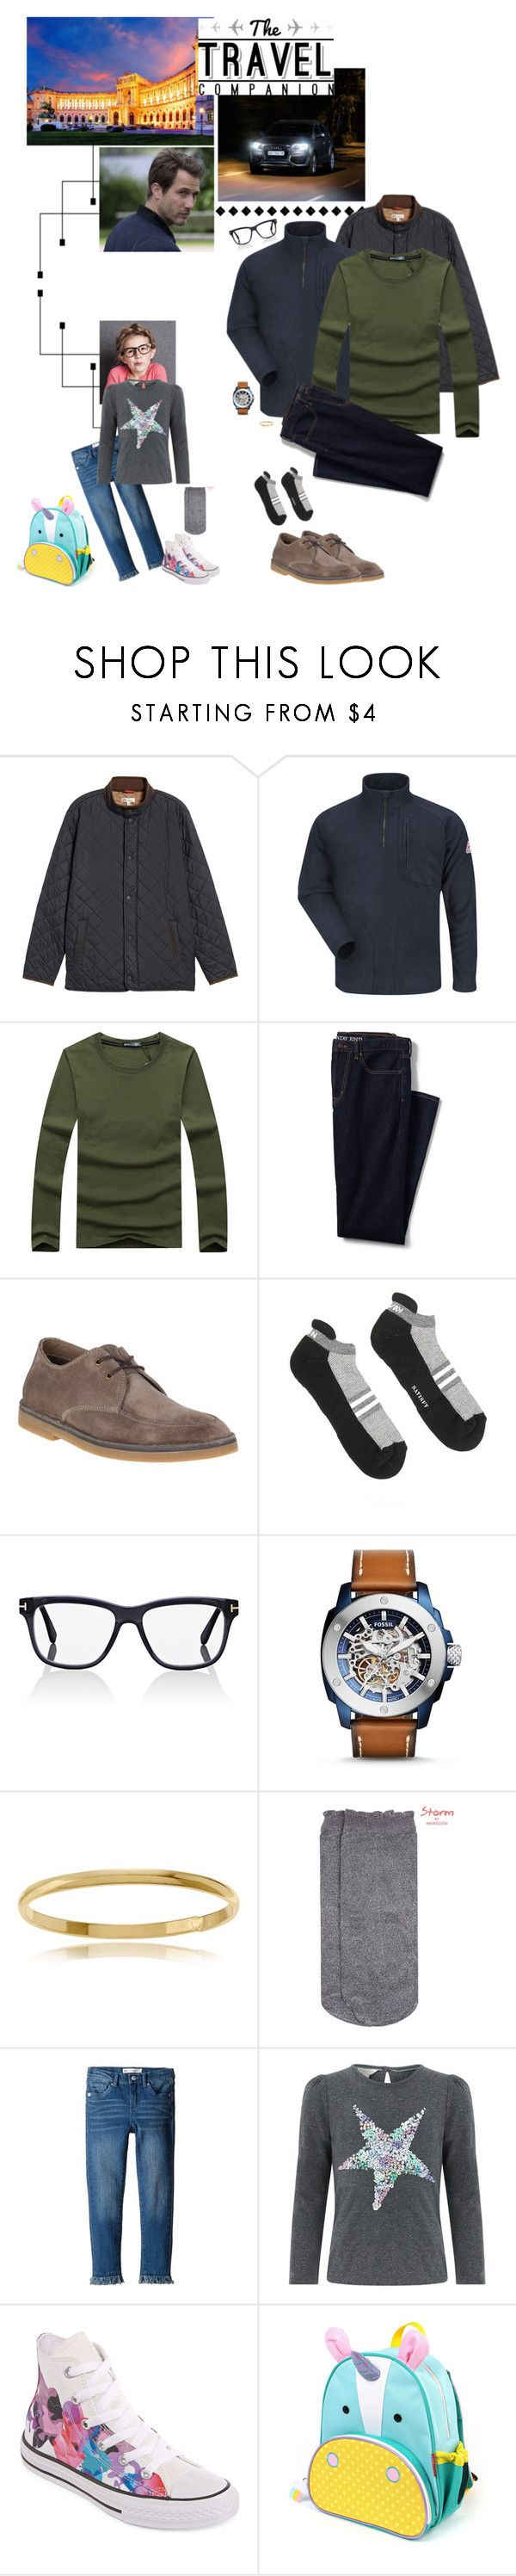 """""""(L) Road Trip - December 2017"""" by vanessa-von-osterreich ❤ liked on Polyvore featuring Peter Millar, Bulwark FR, Lands' End, Hush Puppies, Satisfy, Tom Ford, FOSSIL, Journee Collection, Lonely Planet and Monsoon"""